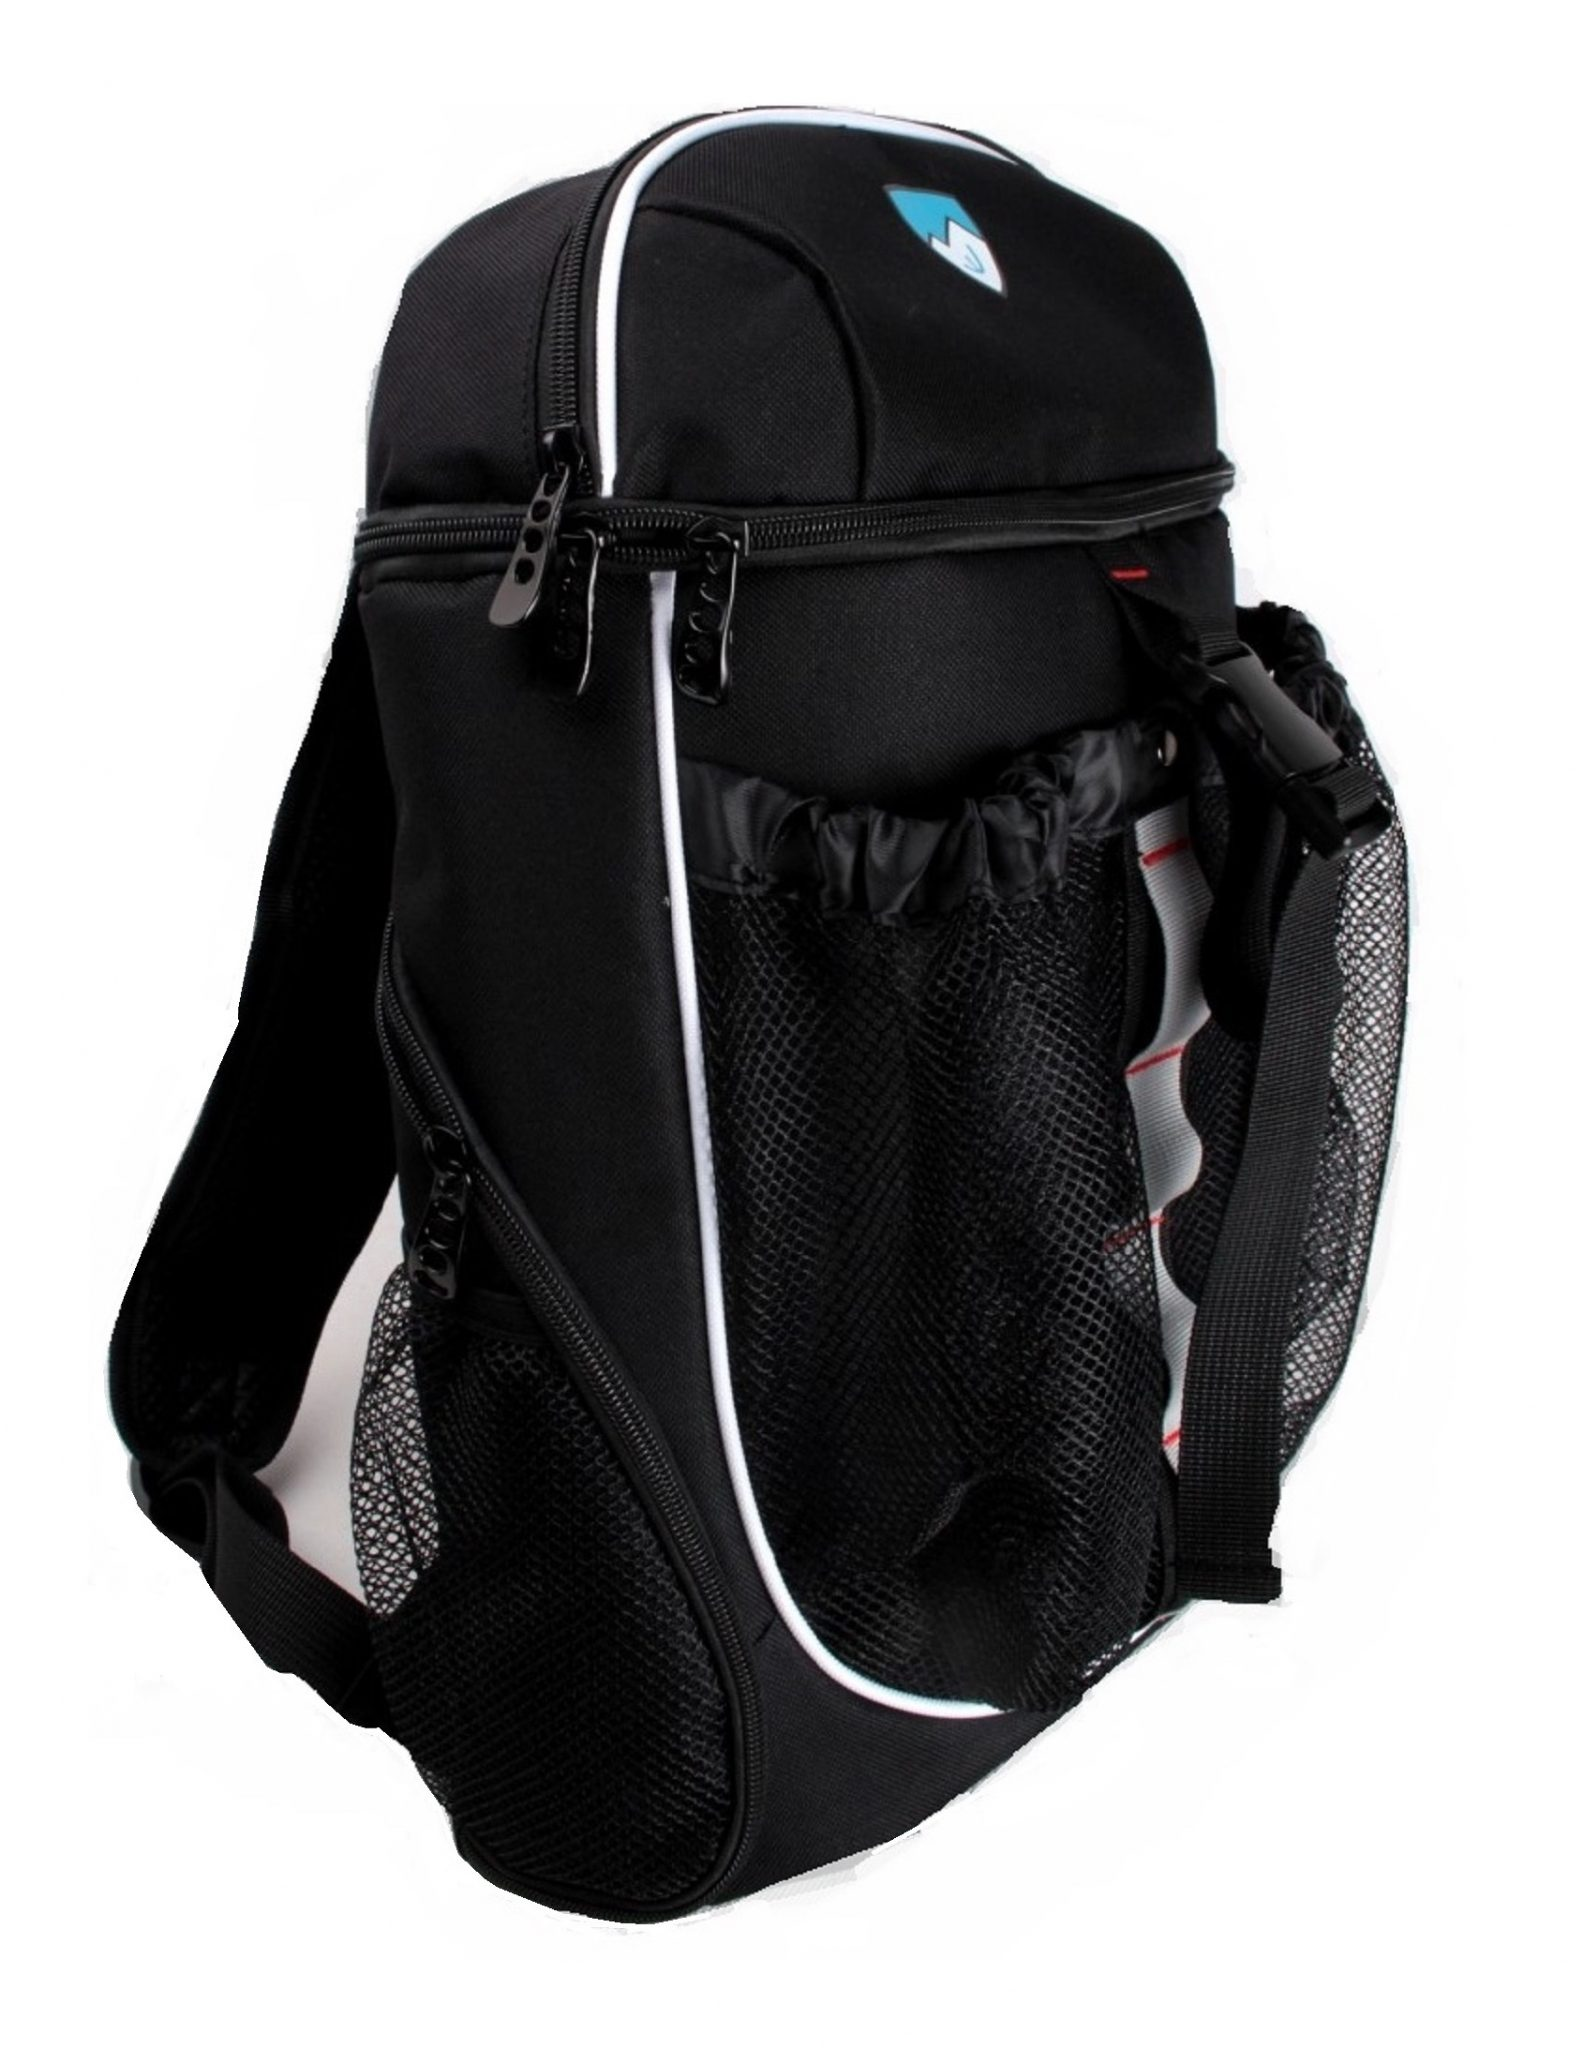 Hard Work Sports Basketball Backpack with Ball Compartment – Soccer Backpack for Kids, Men & Women